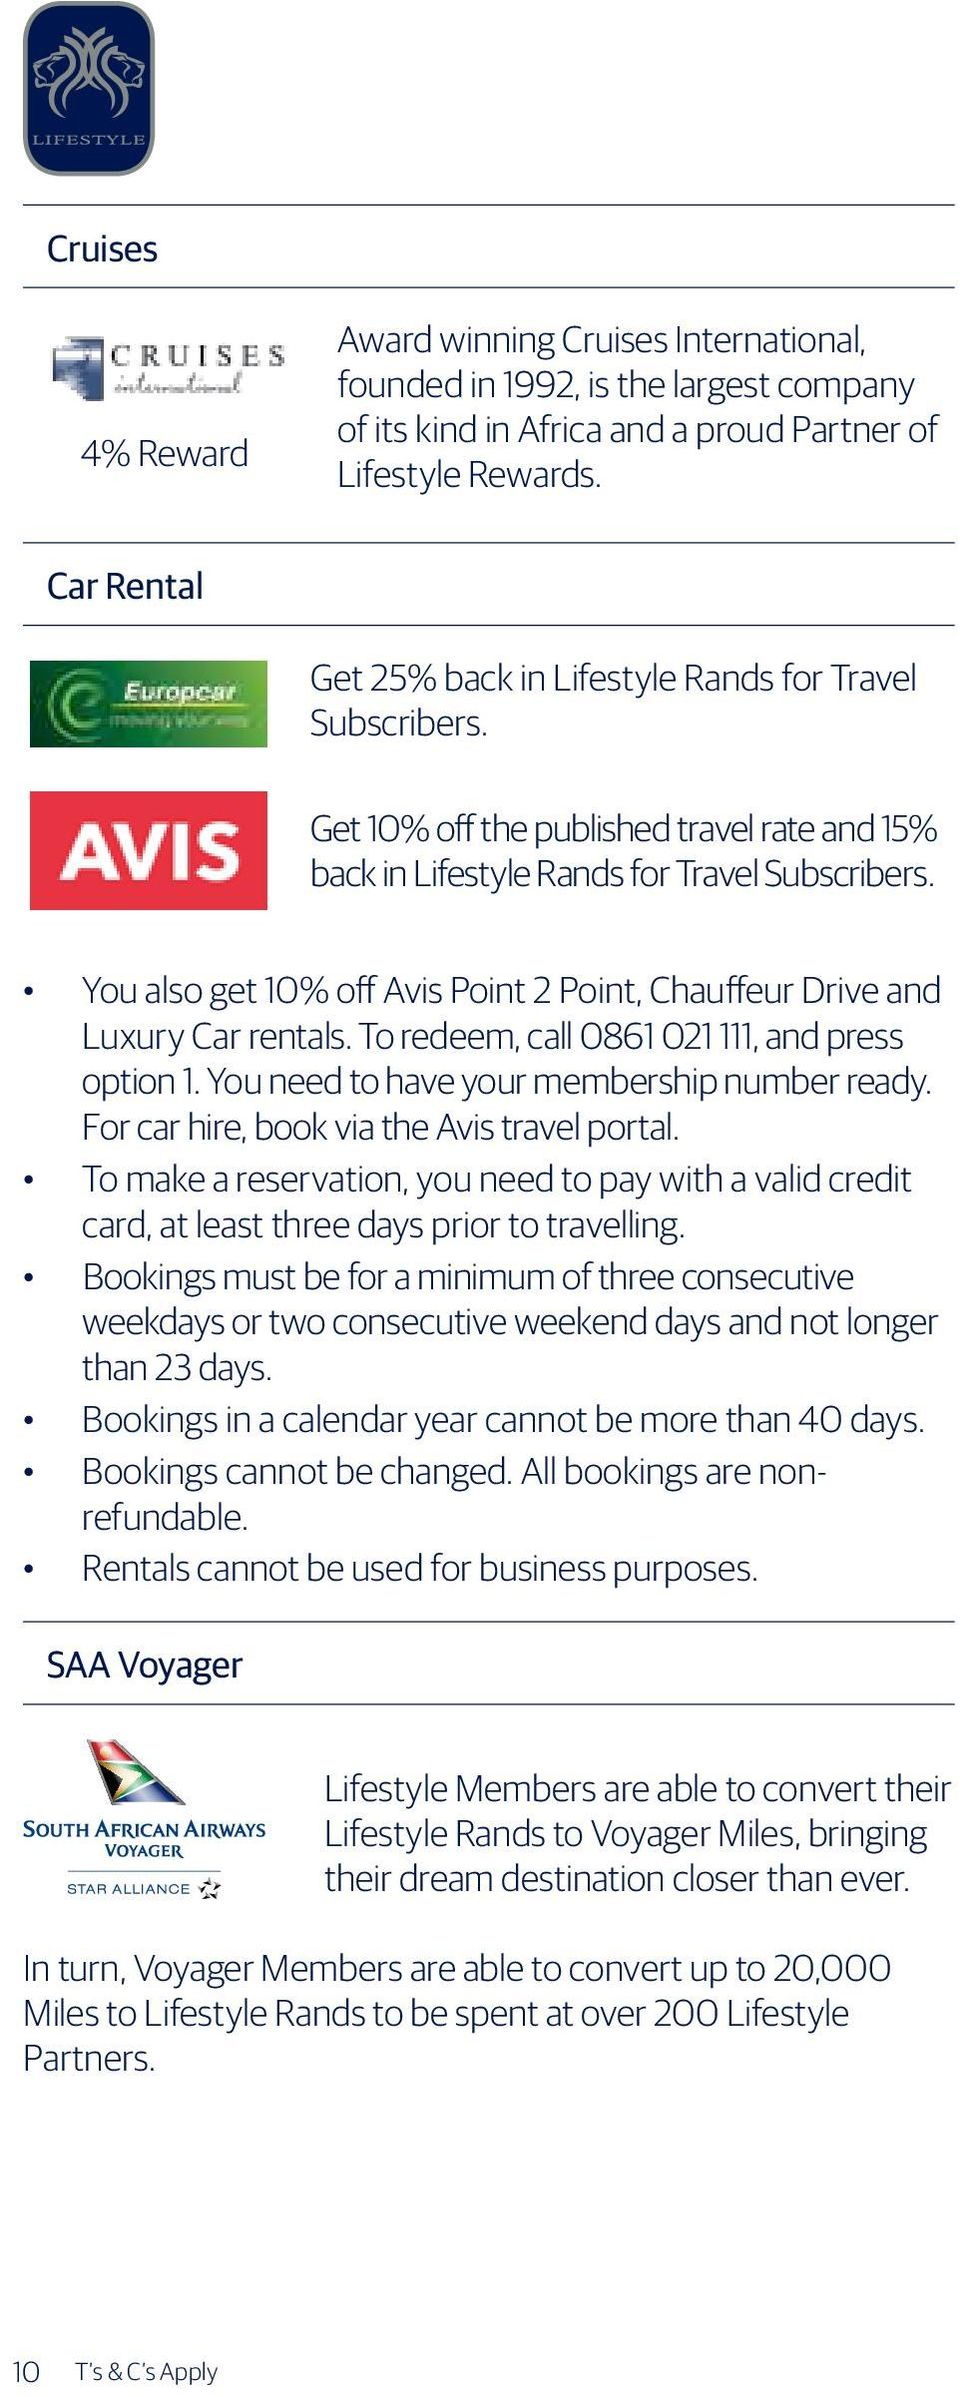 You also get 10% off Avis Point 2 Point, Chauffeur Drive and Luxury Car rentals. To redeem, call 0861 021 111, and press option 1. You need to have your membership number ready.